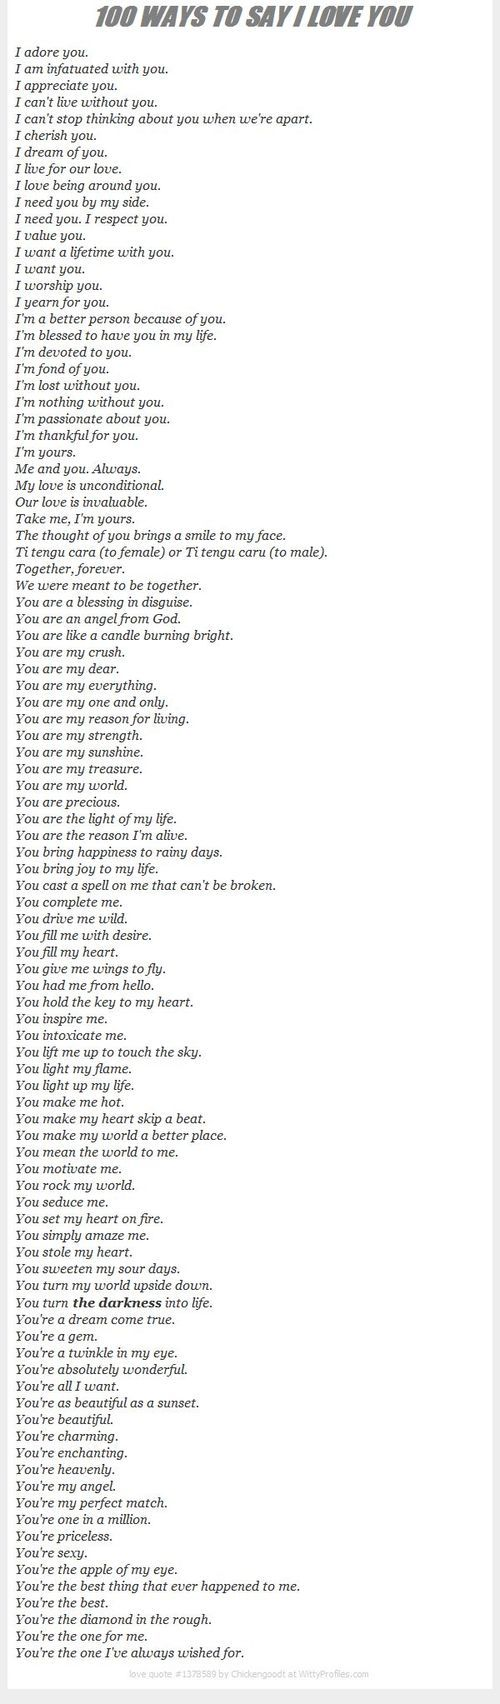 100 Ways to say I love you for my love, J | Love Quotes